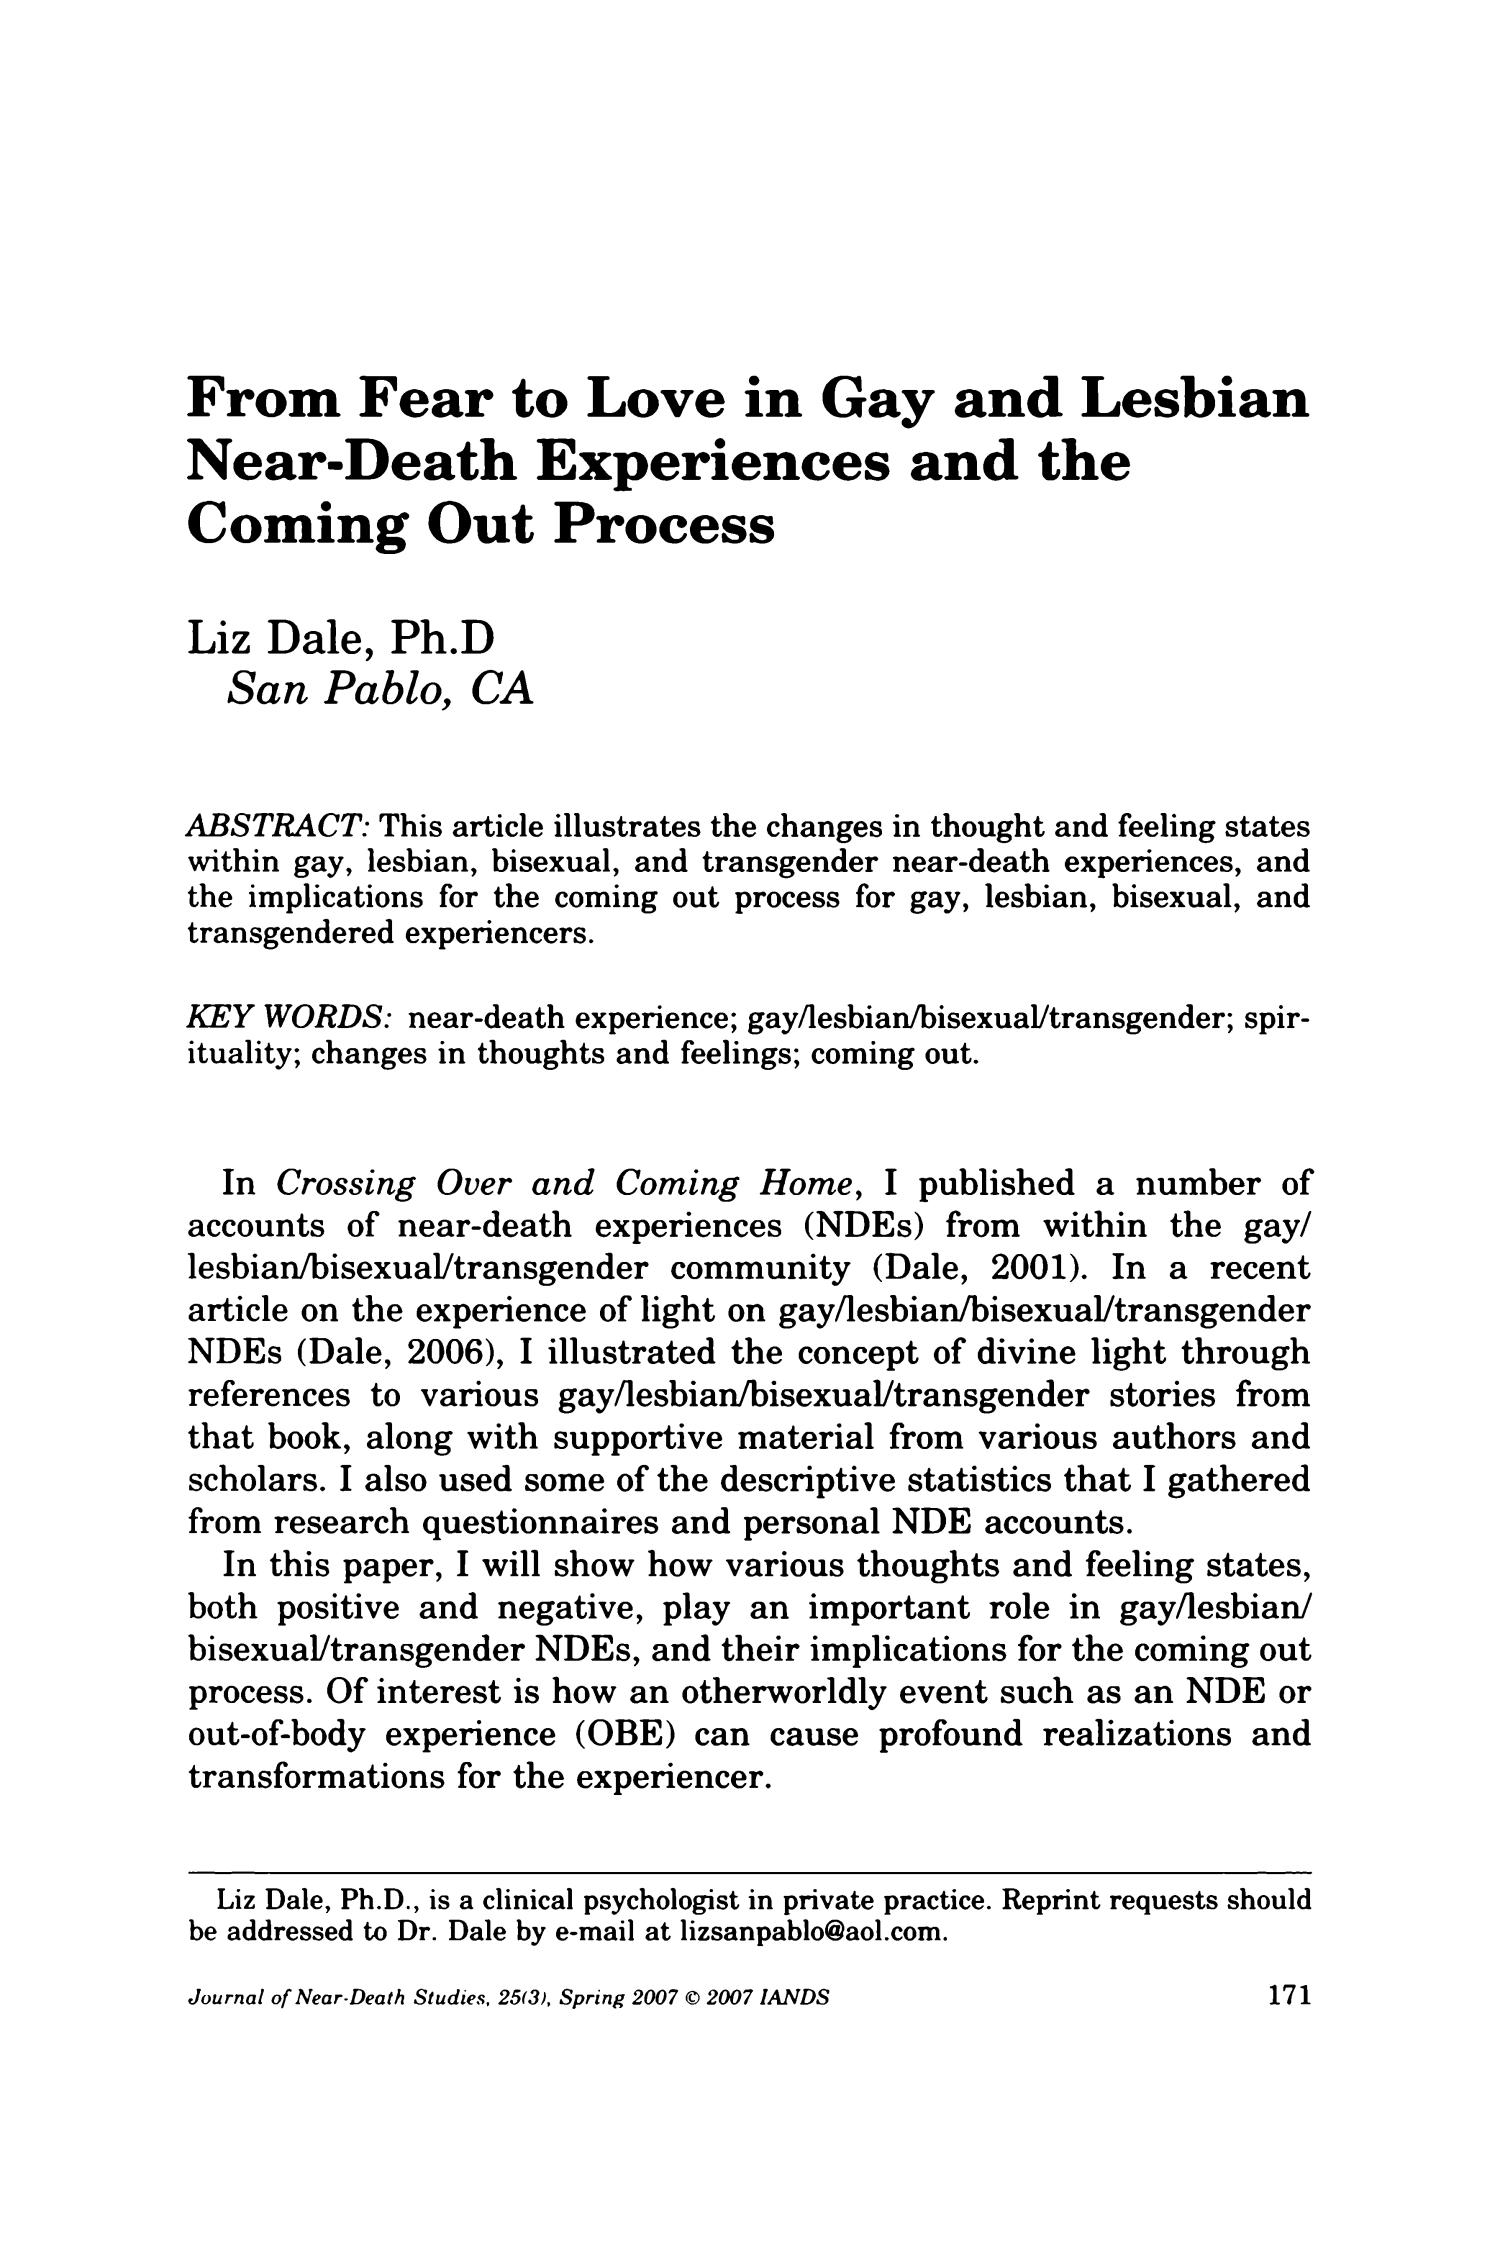 Bisexual british gay lesbian practice psychologies research theory